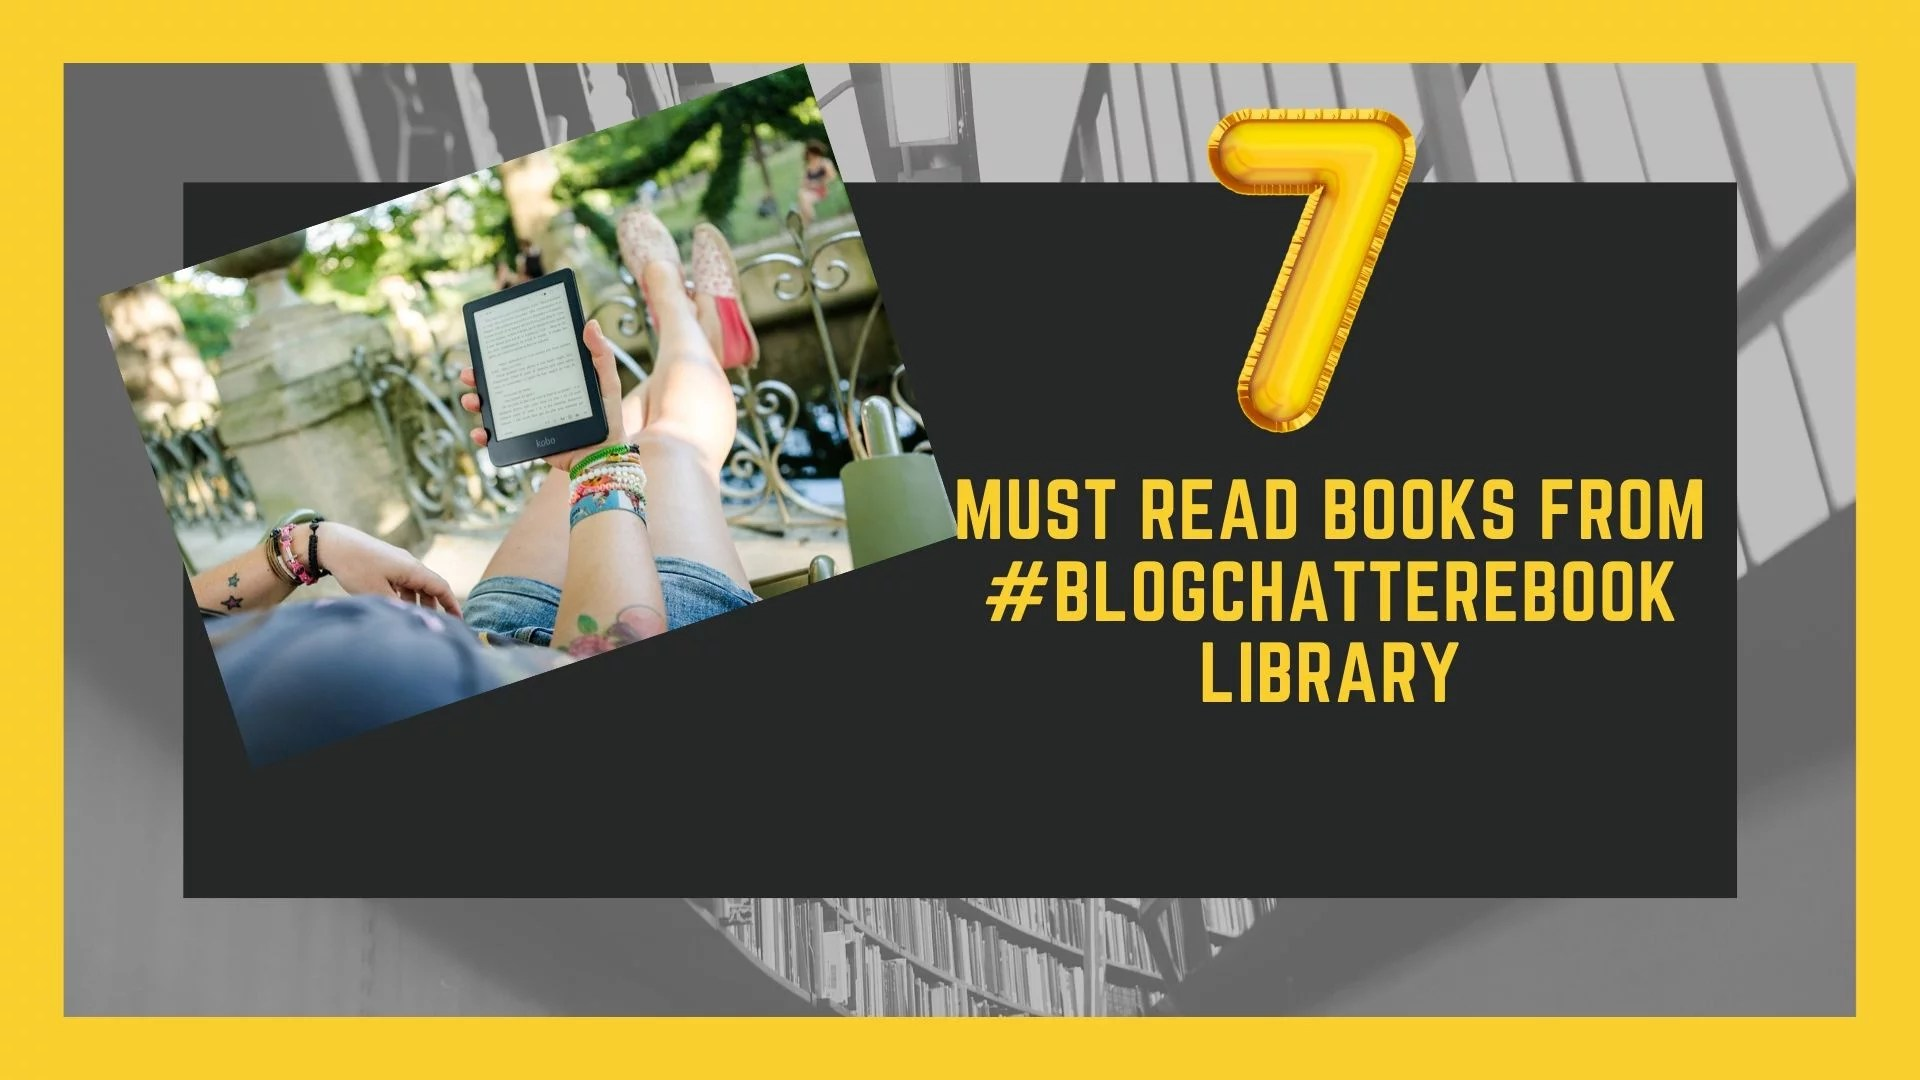 7 Must-read books from #BlogchatterEbook 2020 Library